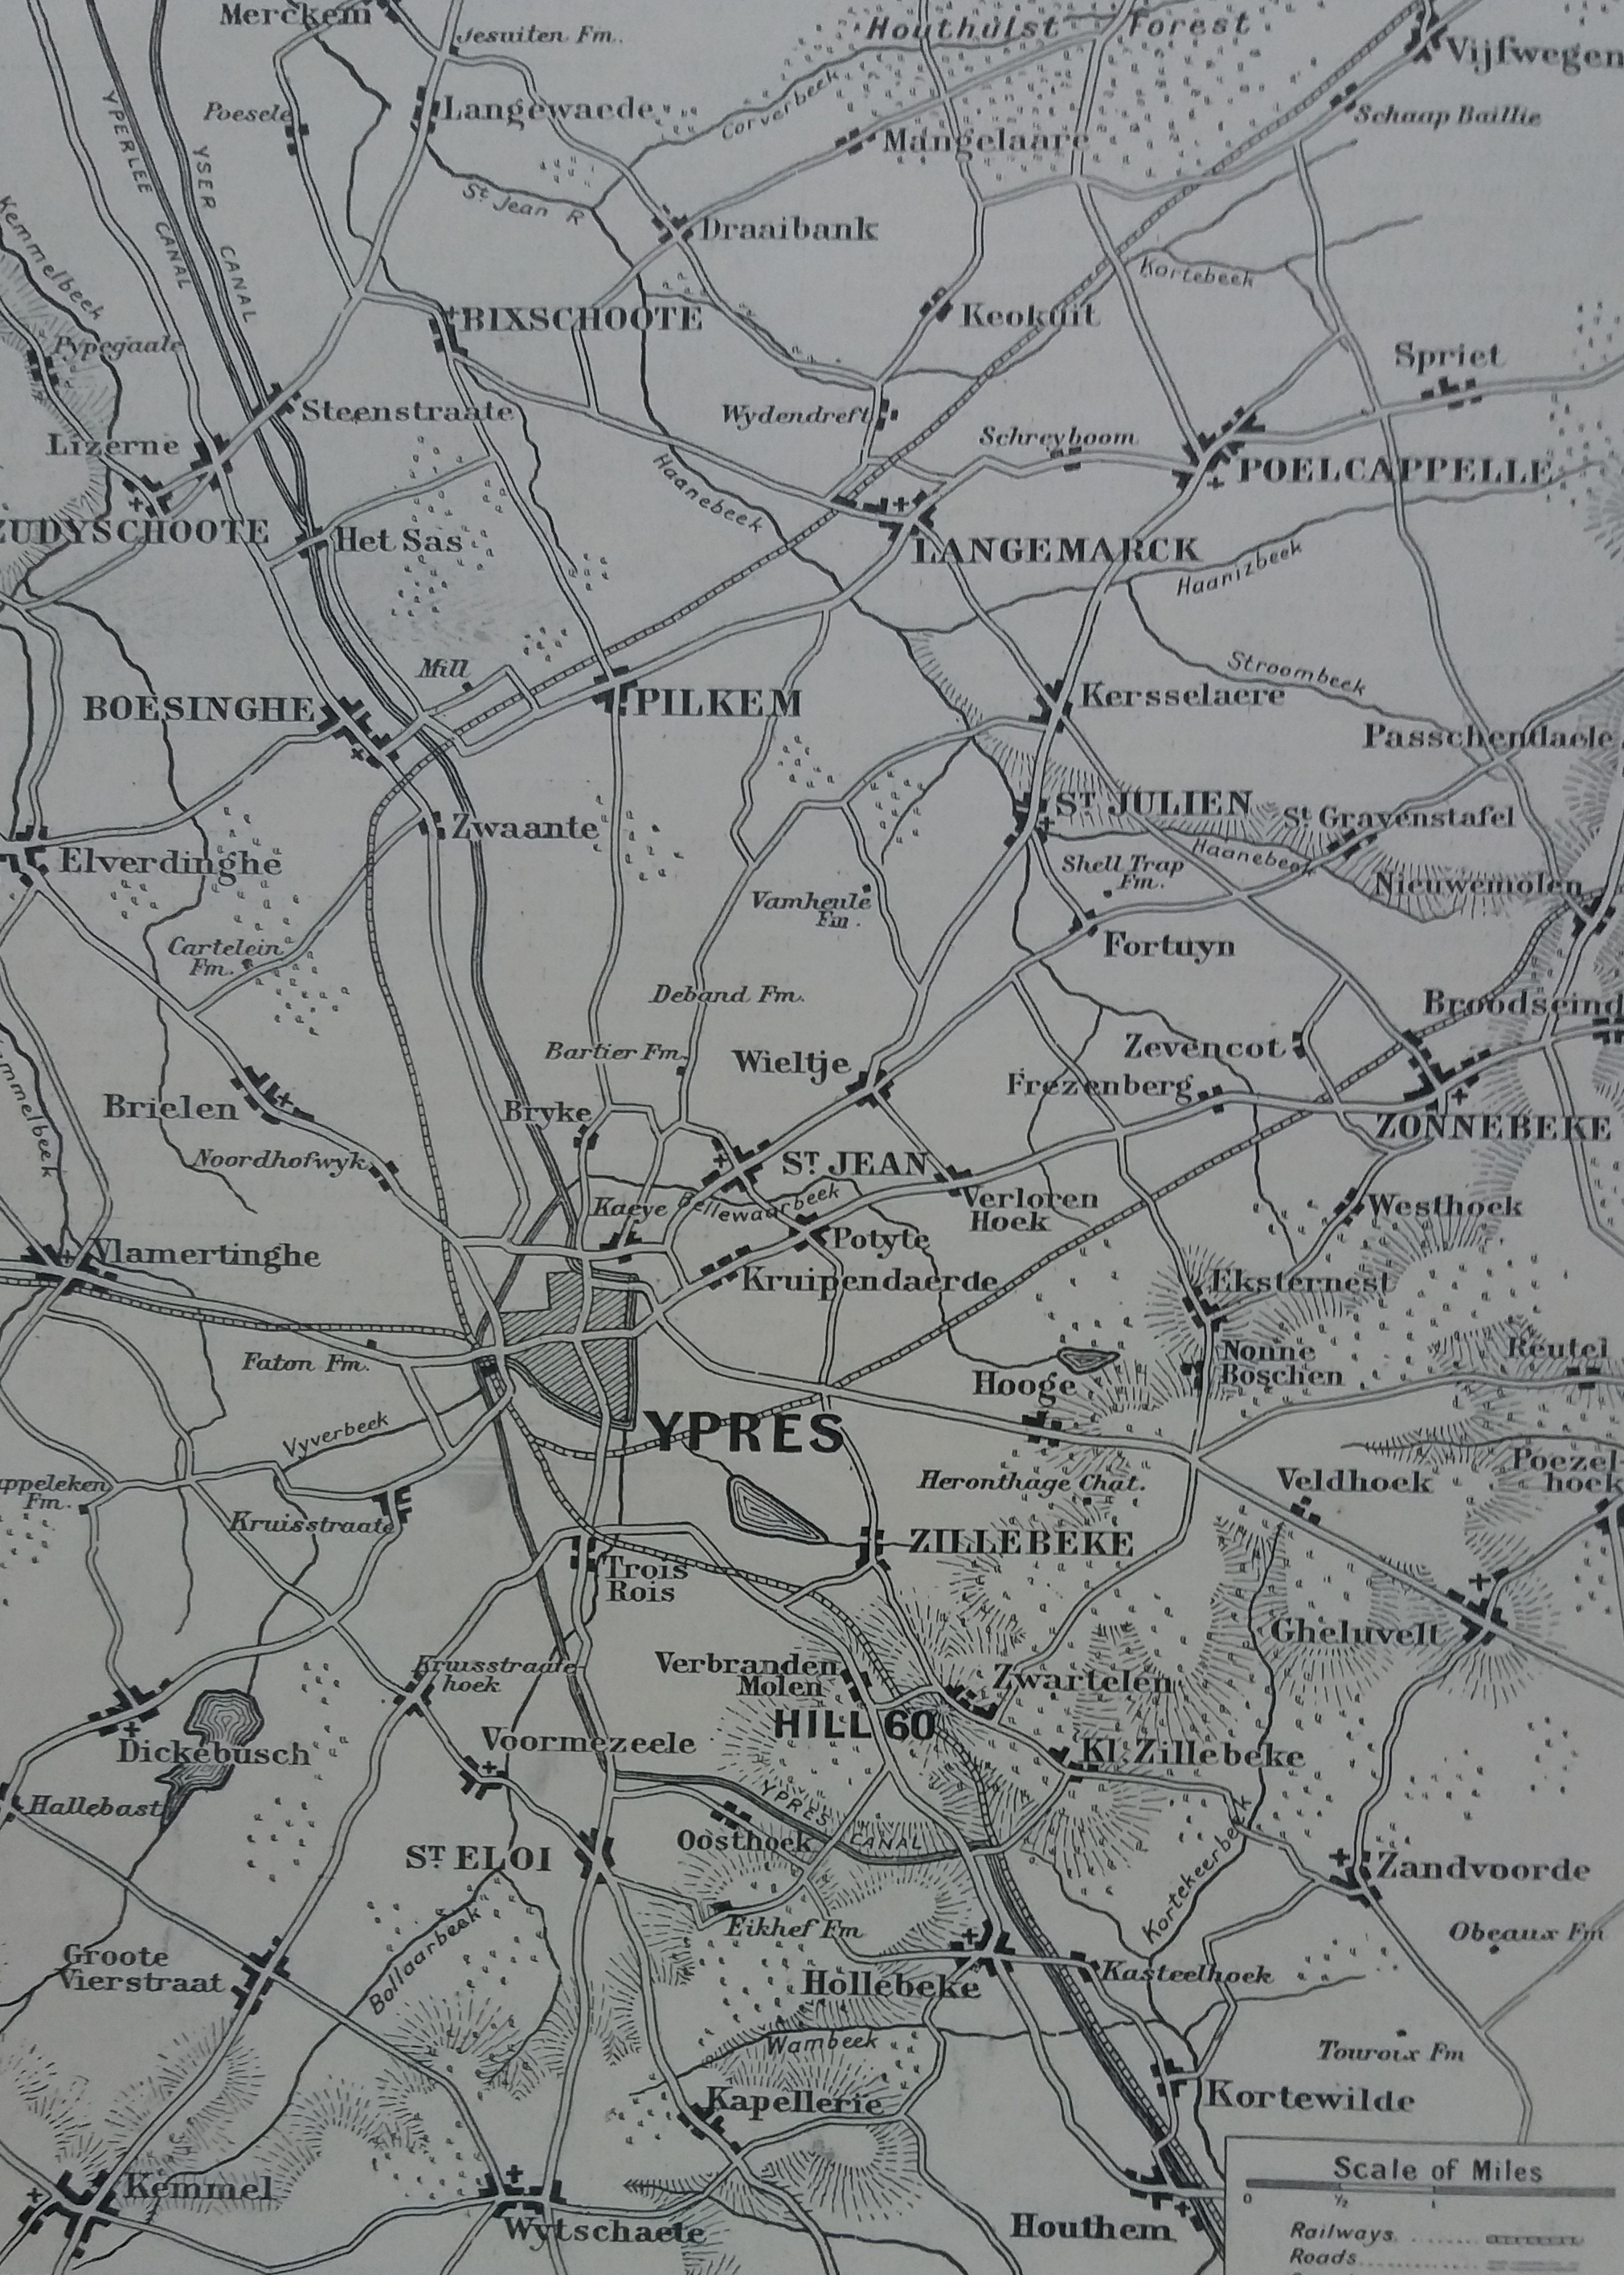 9th November, Flanders and Wales, a First World War